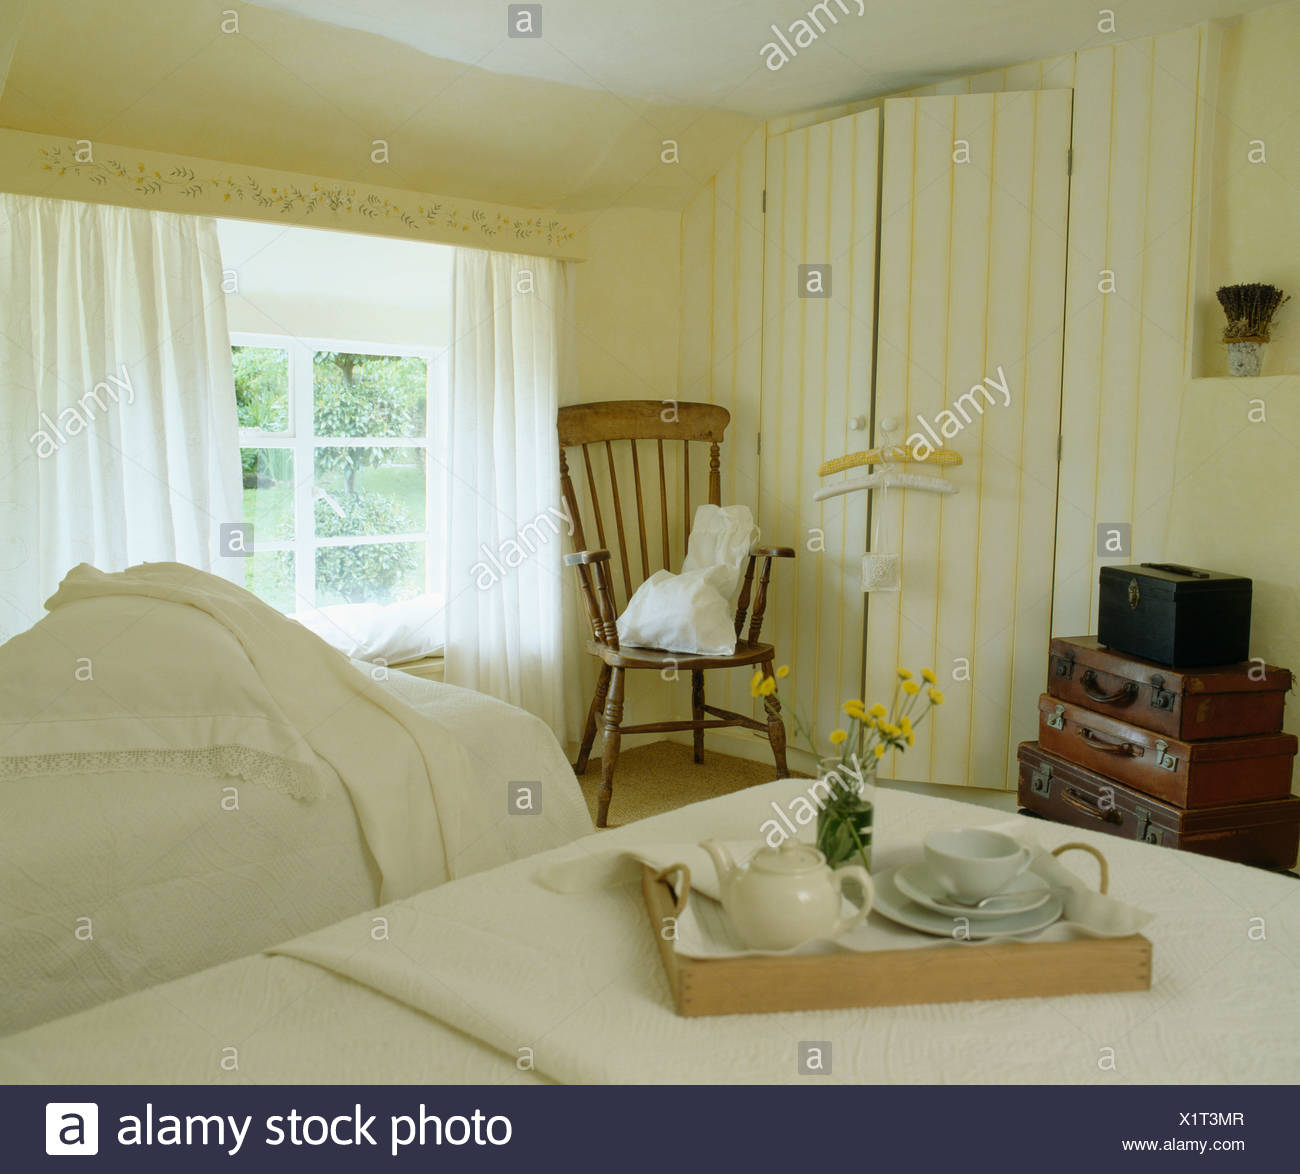 Twin Beds In Bedroom With Breakfast Tray In Cream Country Bedroom With  White Curtains On Window And Yellow Striped Wall Paper